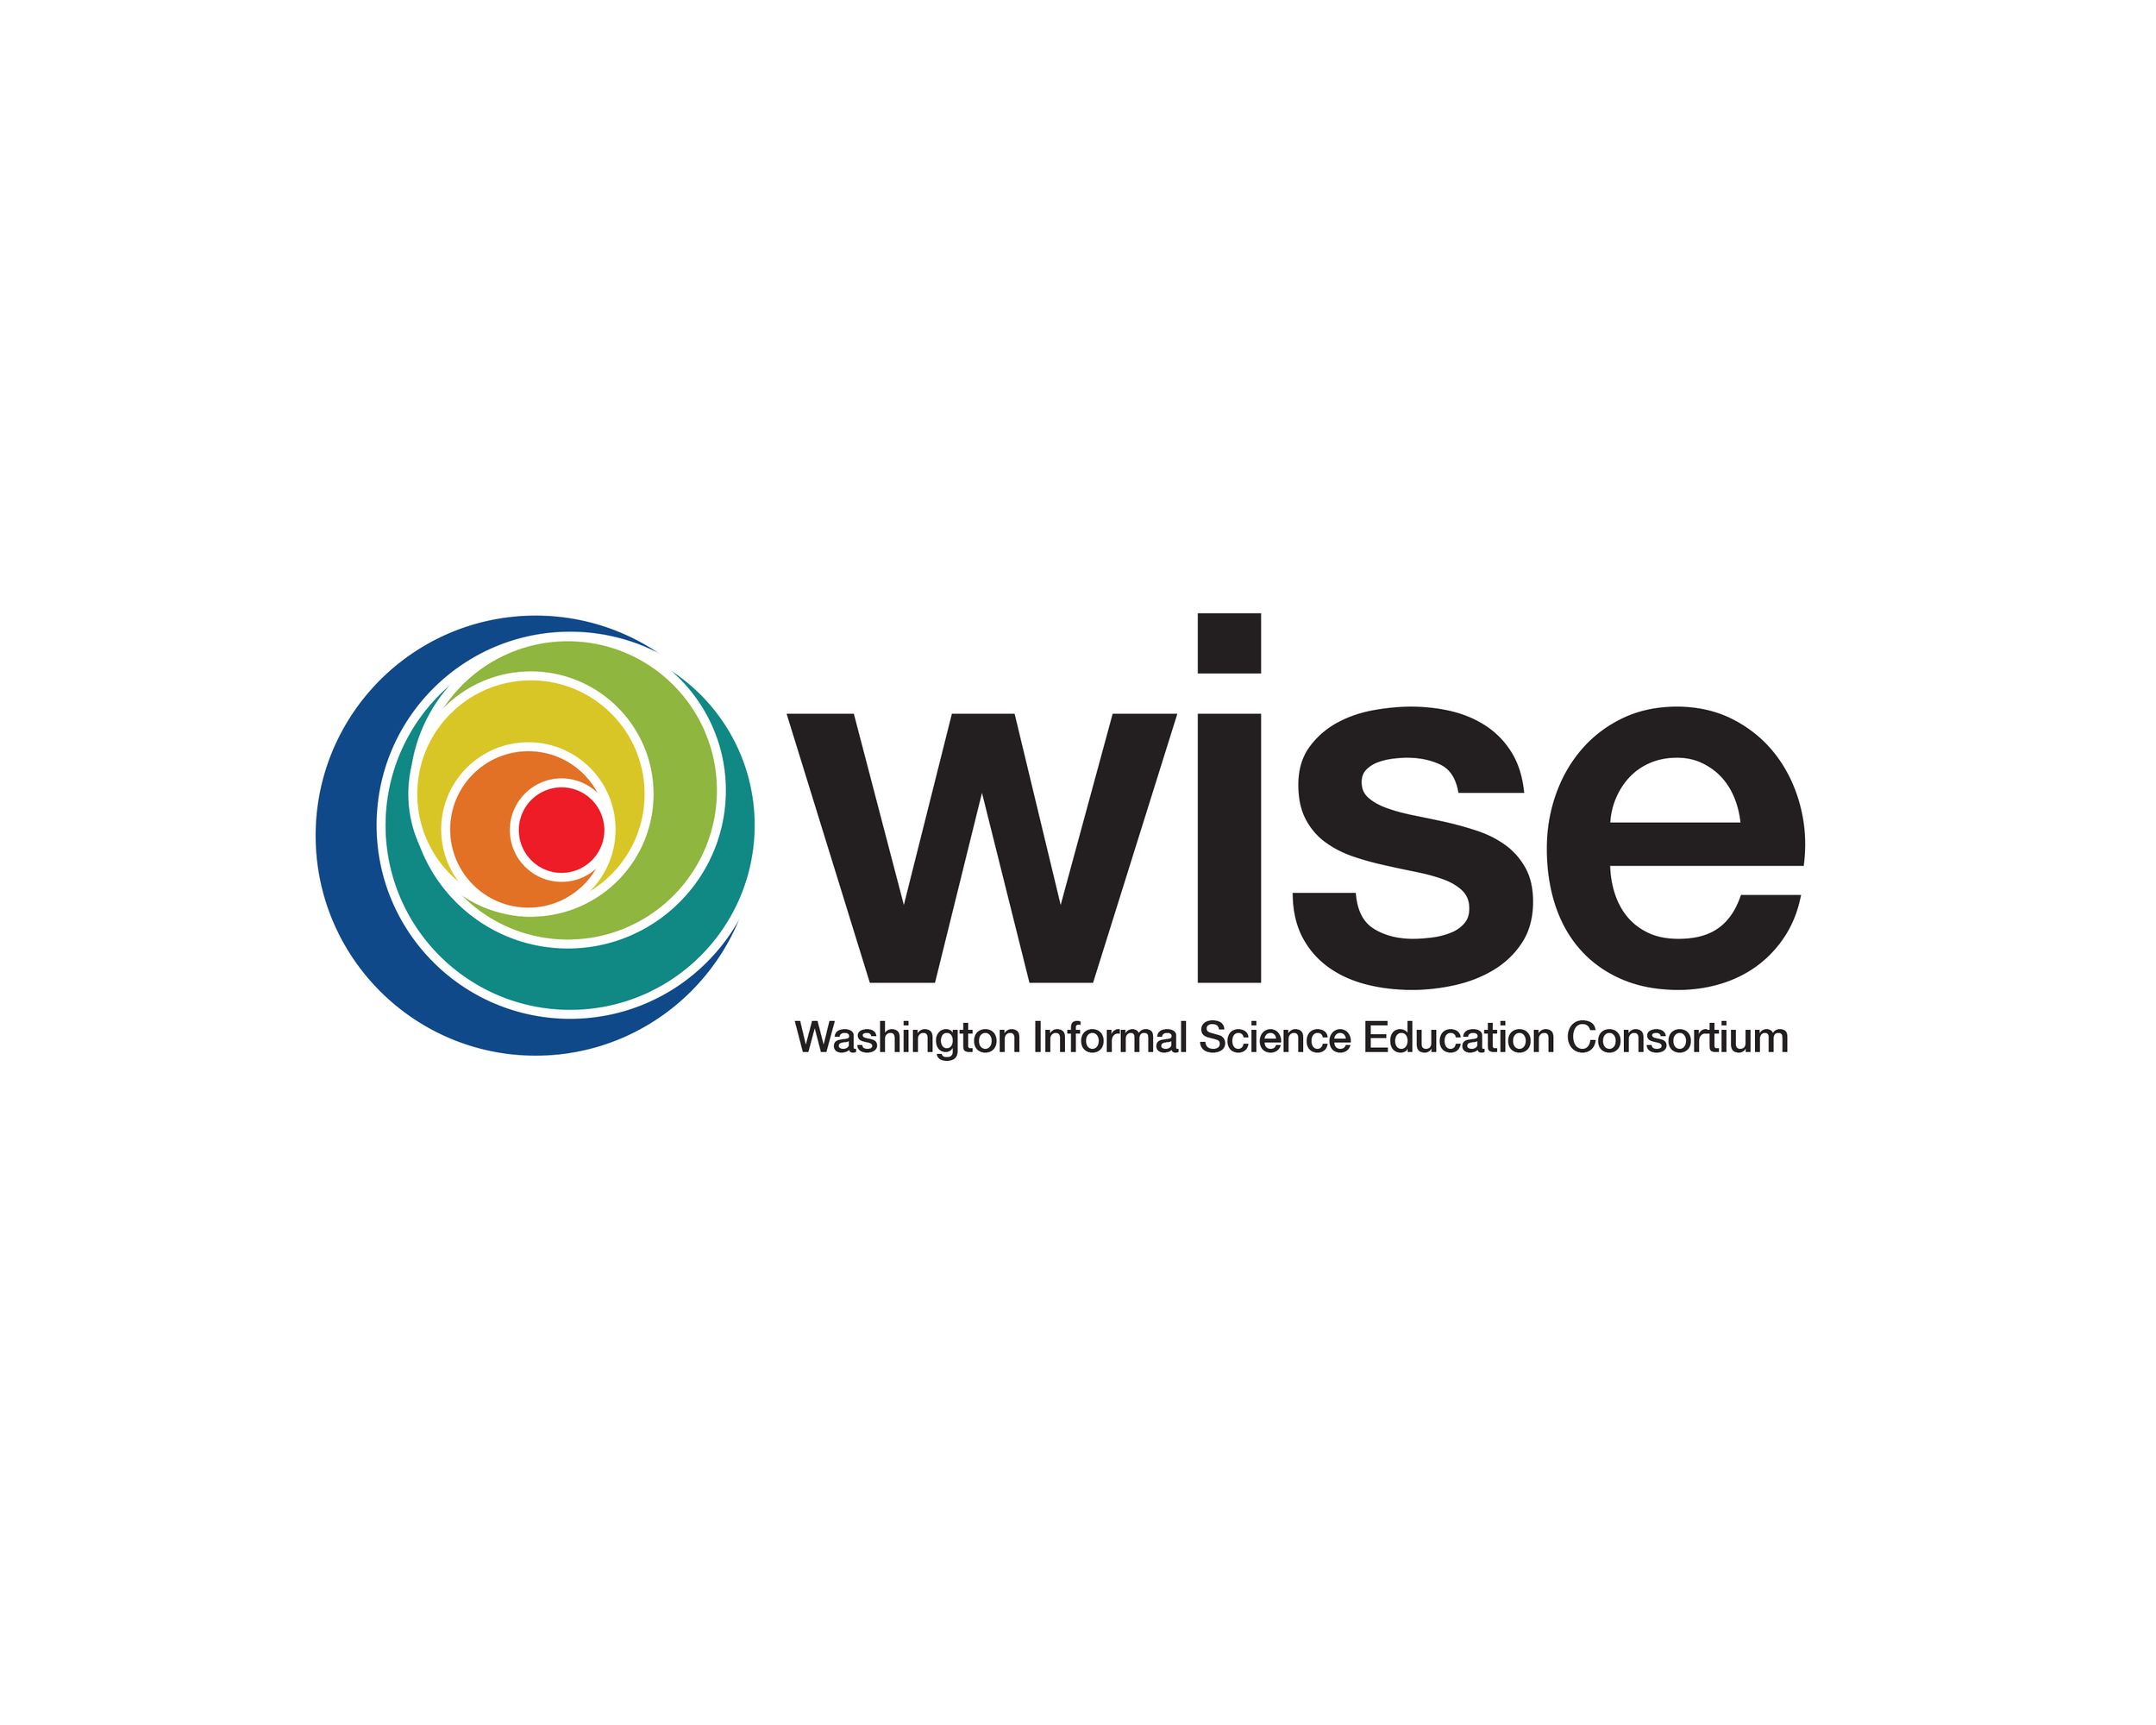 WISE_Logo.png